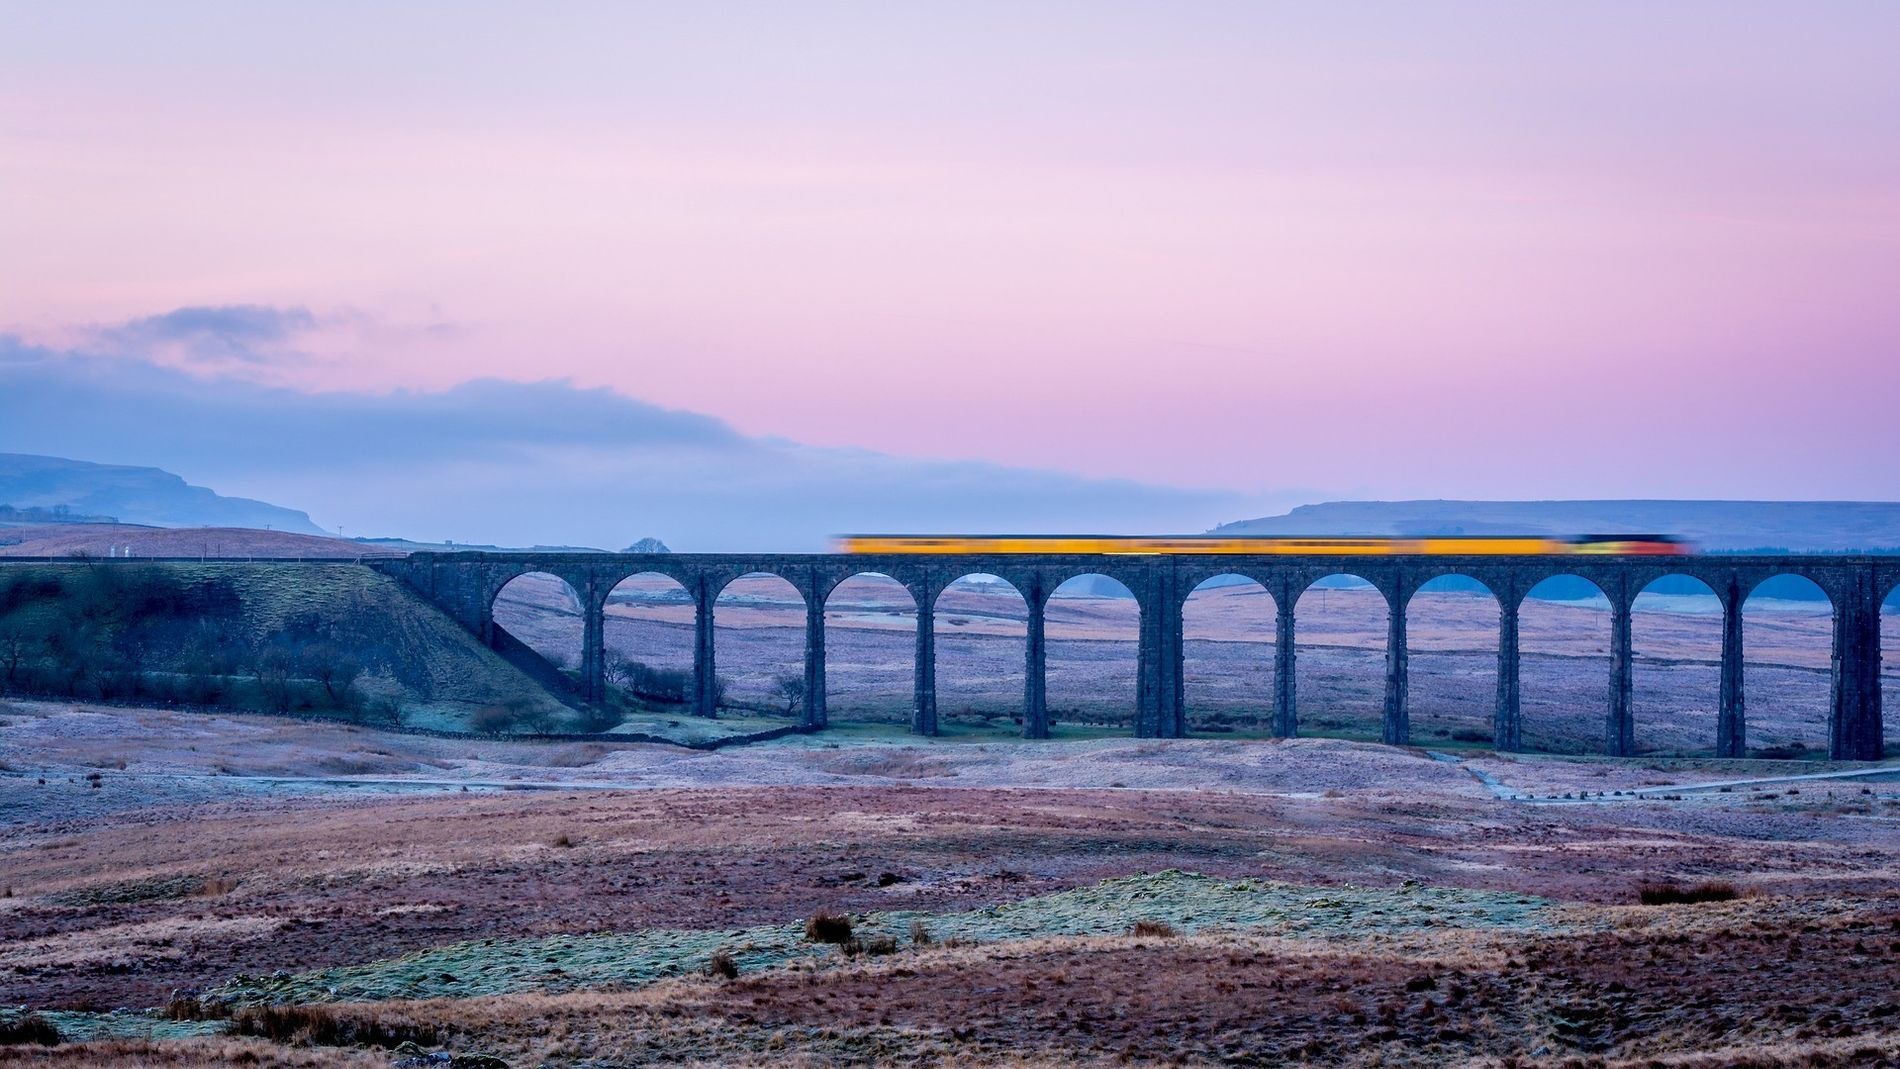 The Ribble Viaduct combines the spectacular scenery with the remarkable achievement of engineering that made the ...